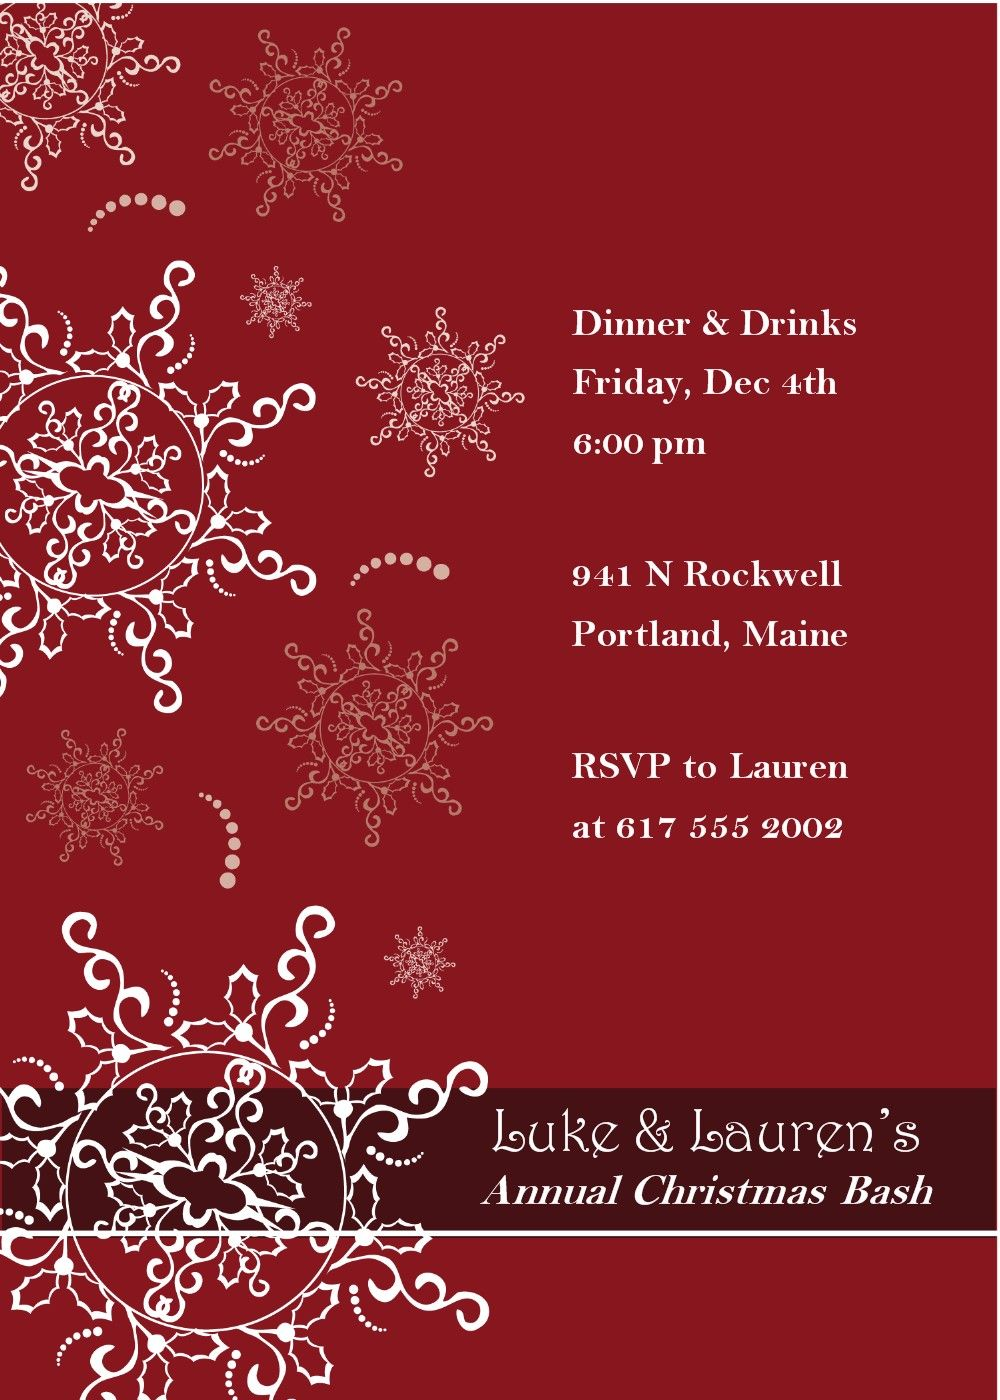 an invitation to depict the holiday spirit and invite the an invitation to depict the holiday spirit and invite the employees for a fun filled evening